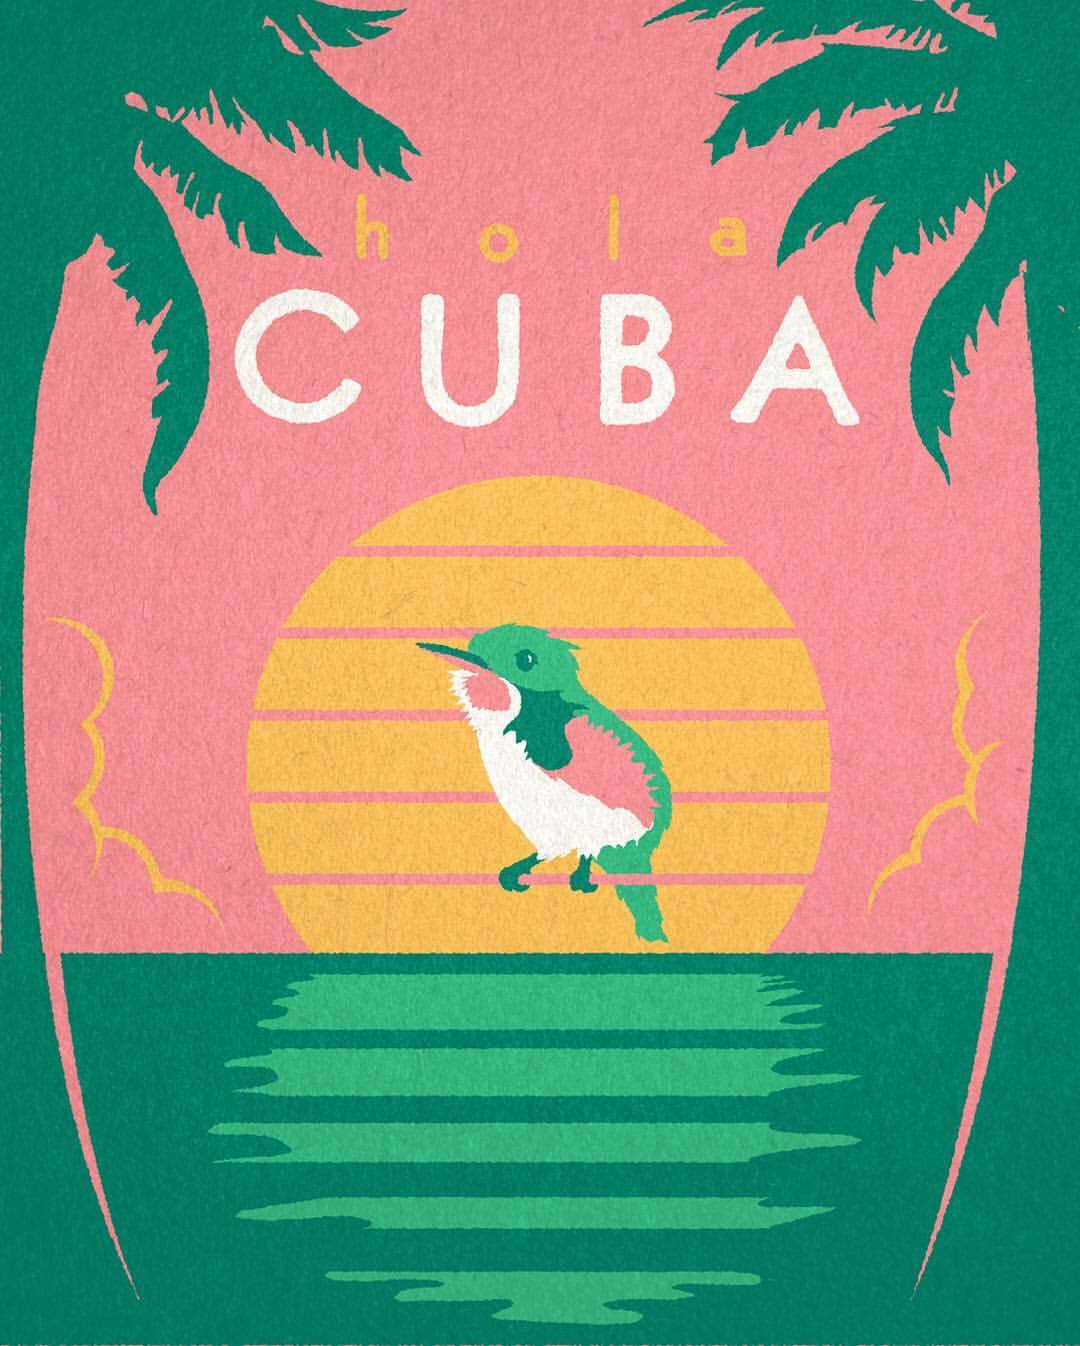 HigherEd-AndyPitts-Place-Cuba.jpg